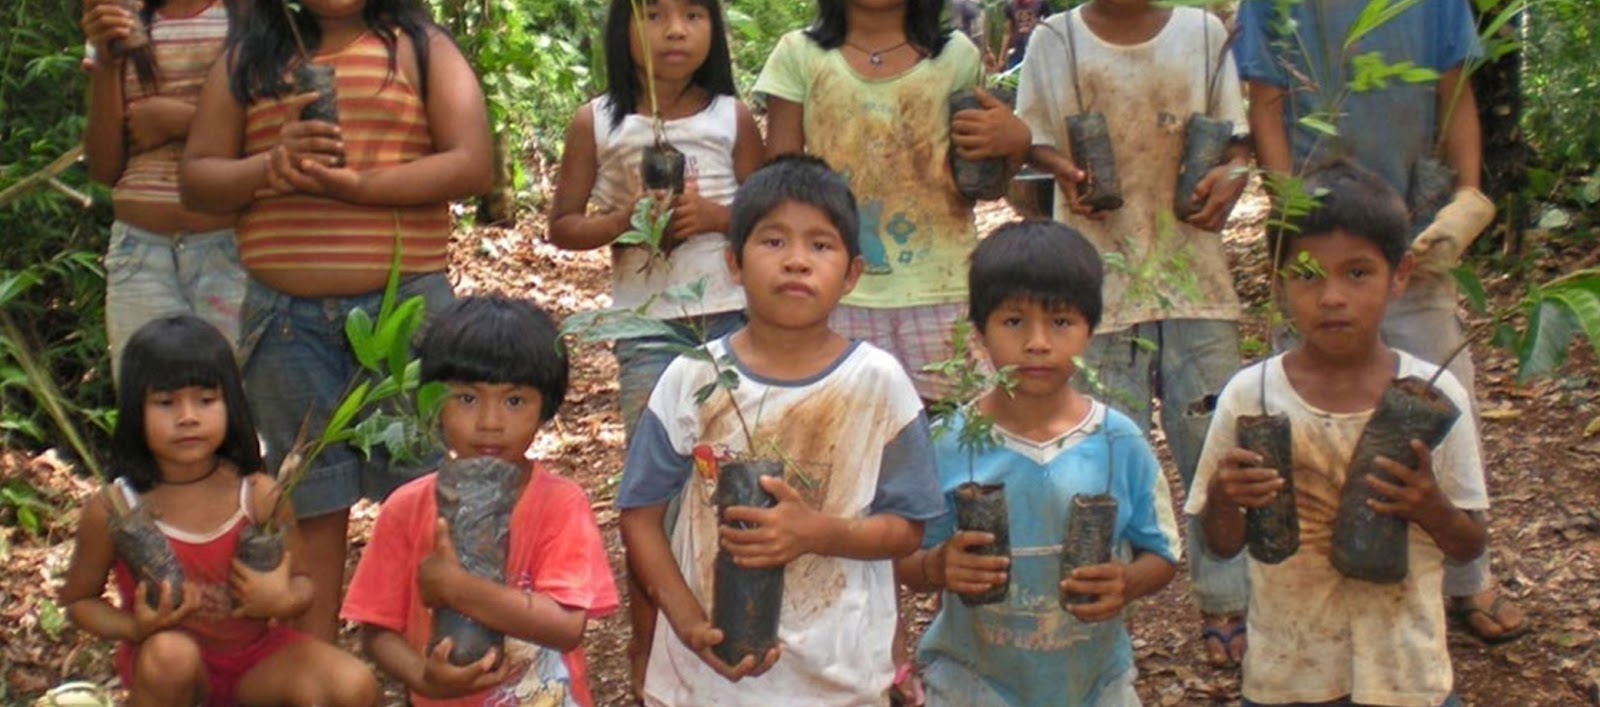 deforestation indigenous peoples and amazon